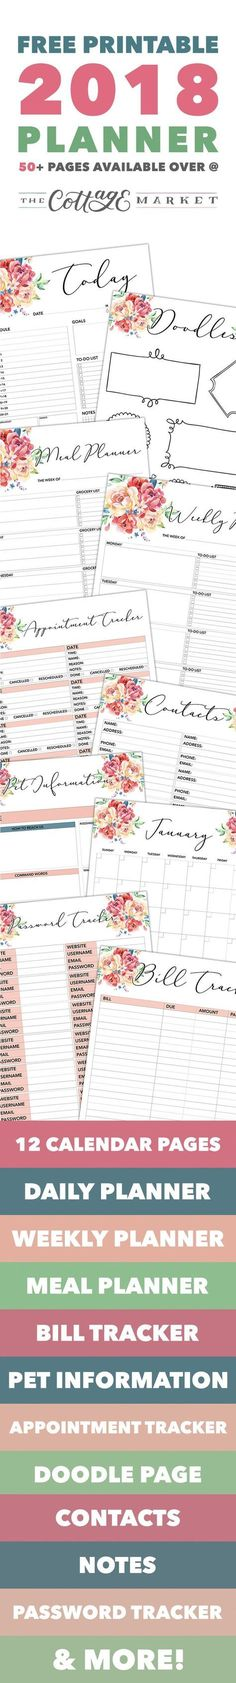 Free Printable 2018 Planner 50 Plus Printable Pages